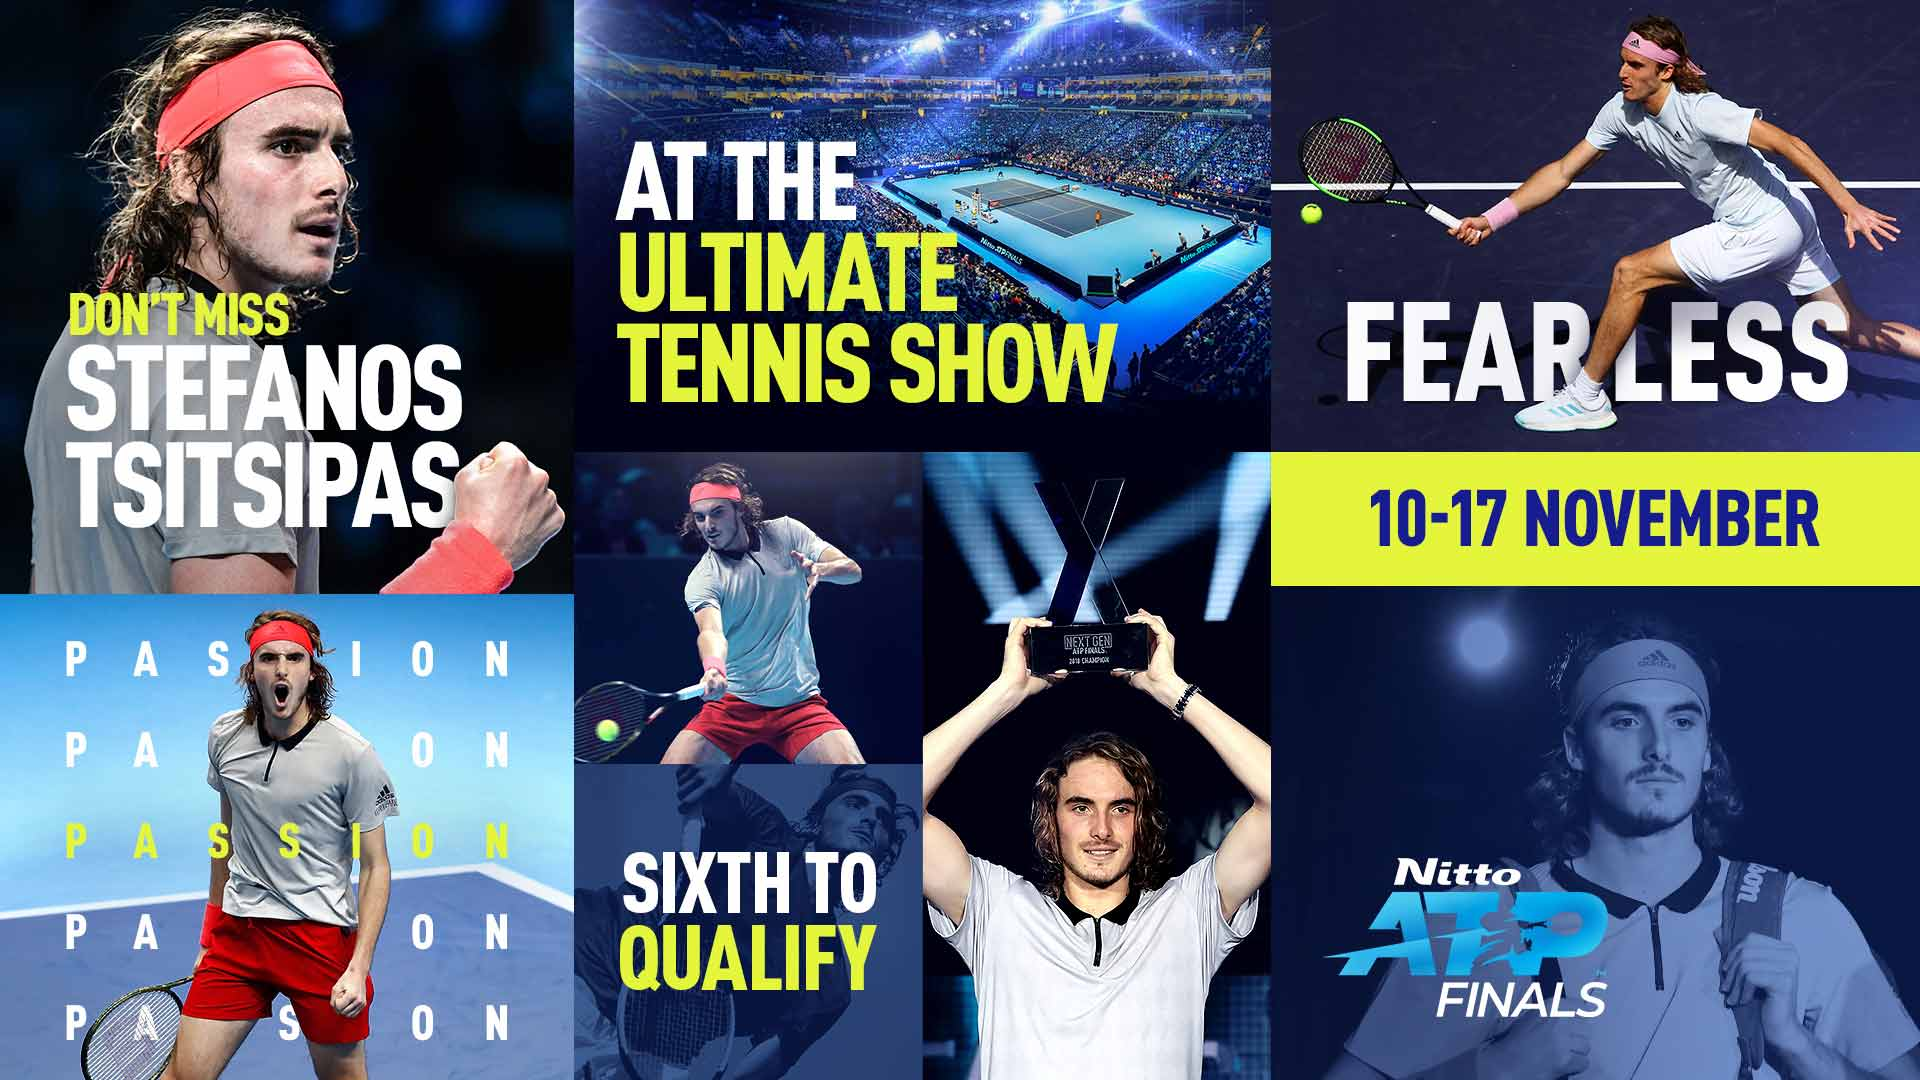 Stefanos Tsitsipas Qualifies For Nitto Atp Finals For First Time Atp Tour Tennis